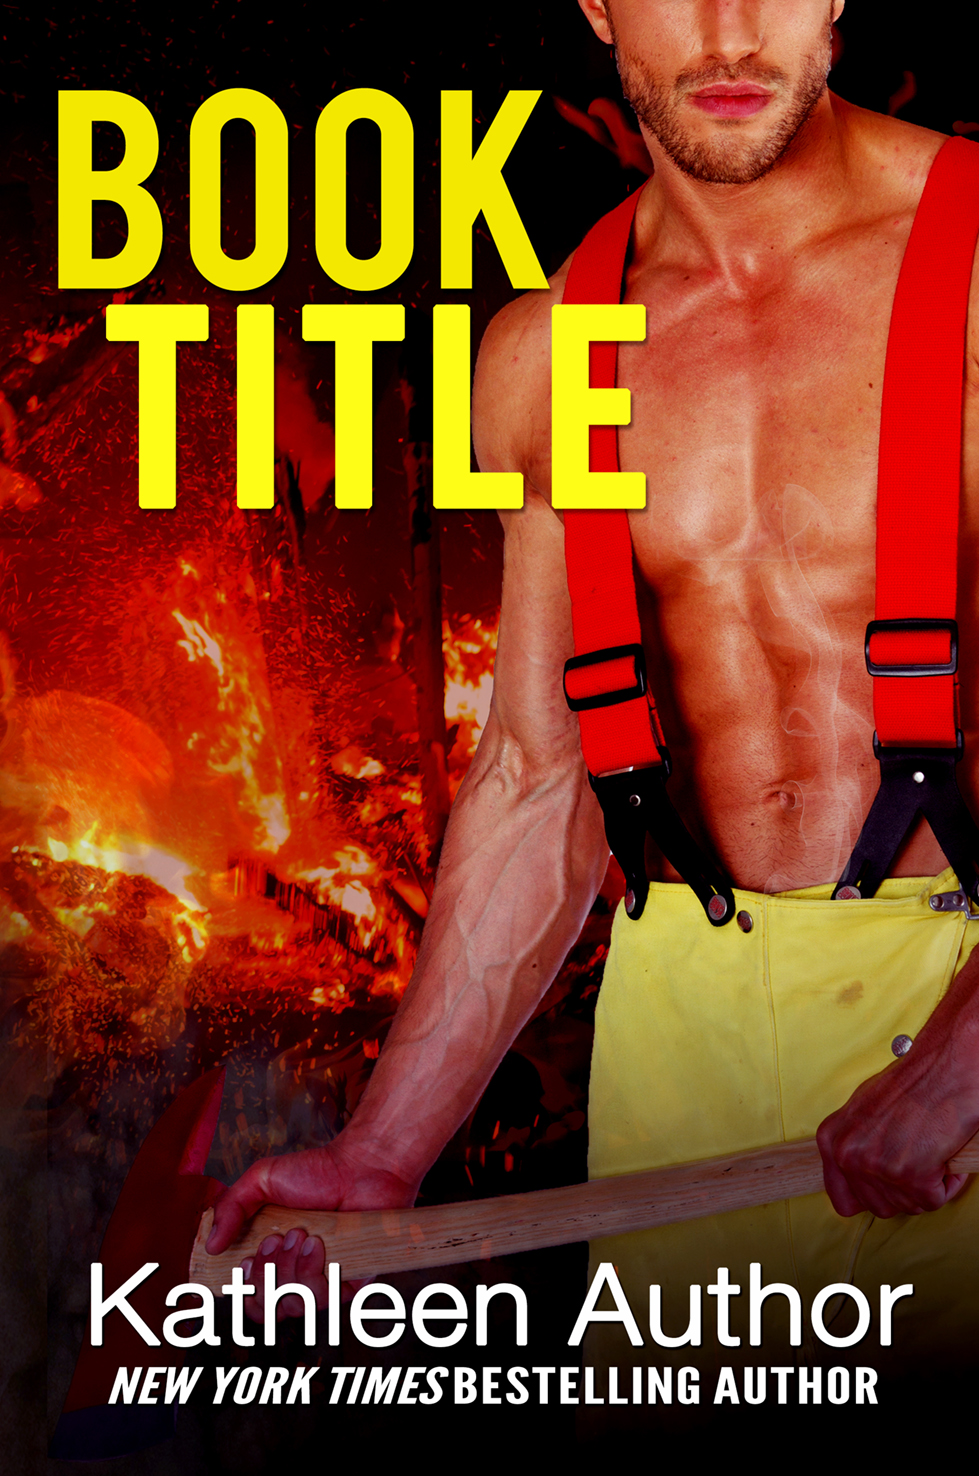 Fire fighter with flames premade book cover